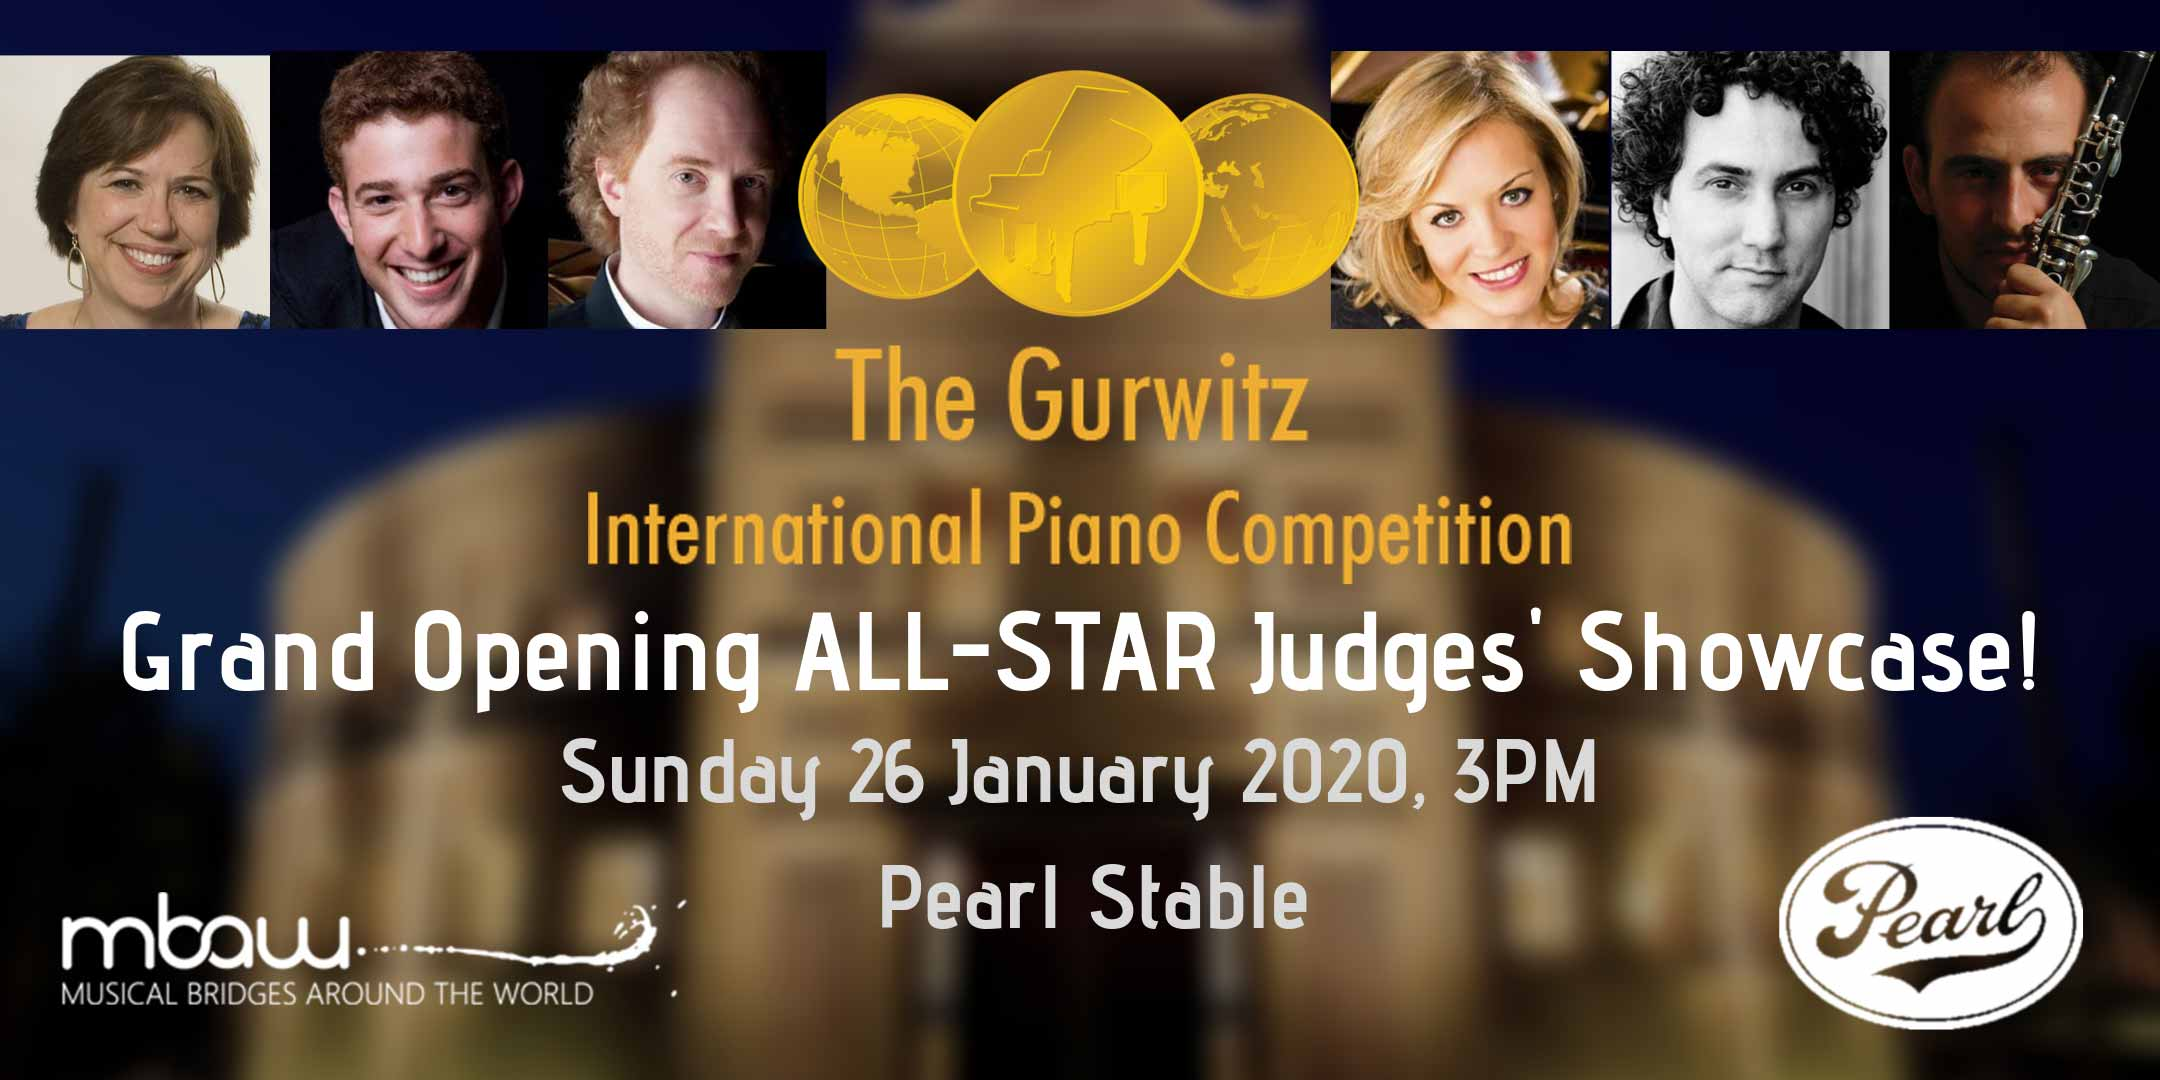 Grand Opening All Star Judges Showcase Free Open To Public Musical Bridges Around The World